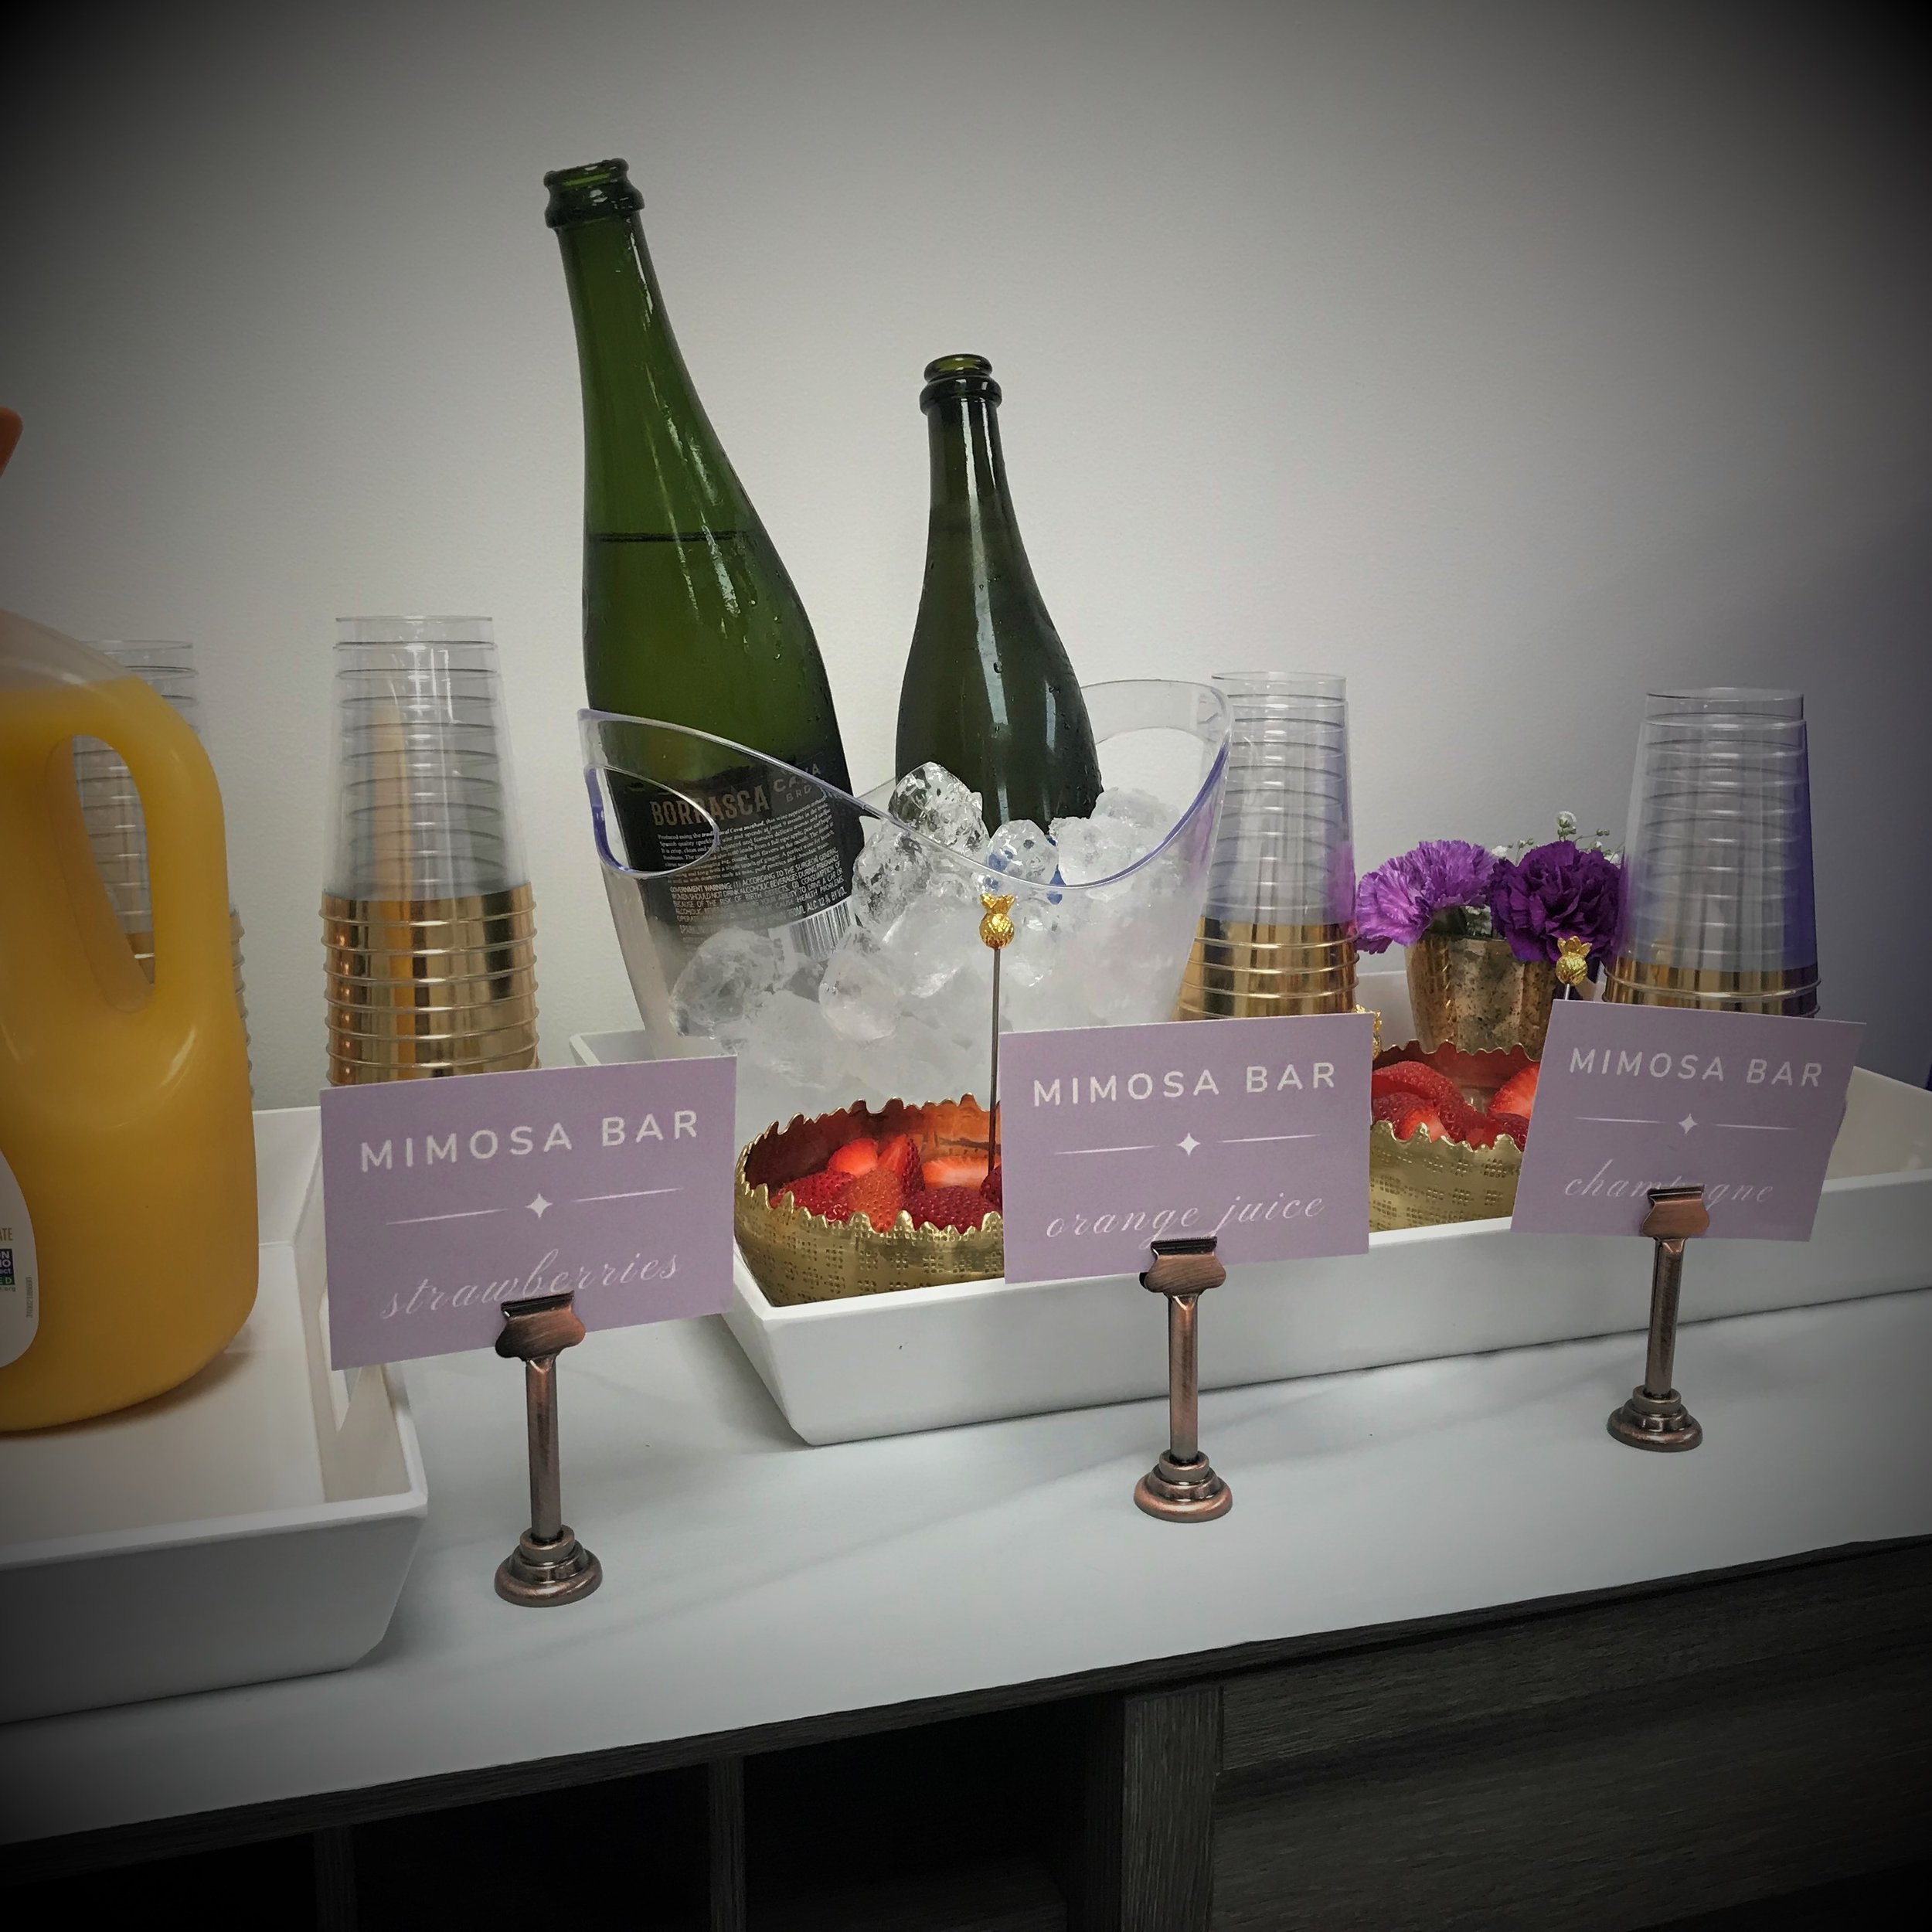 Bridal Shower Venue Madison Wi - Bring your own food & alcohol - No Restrictions!